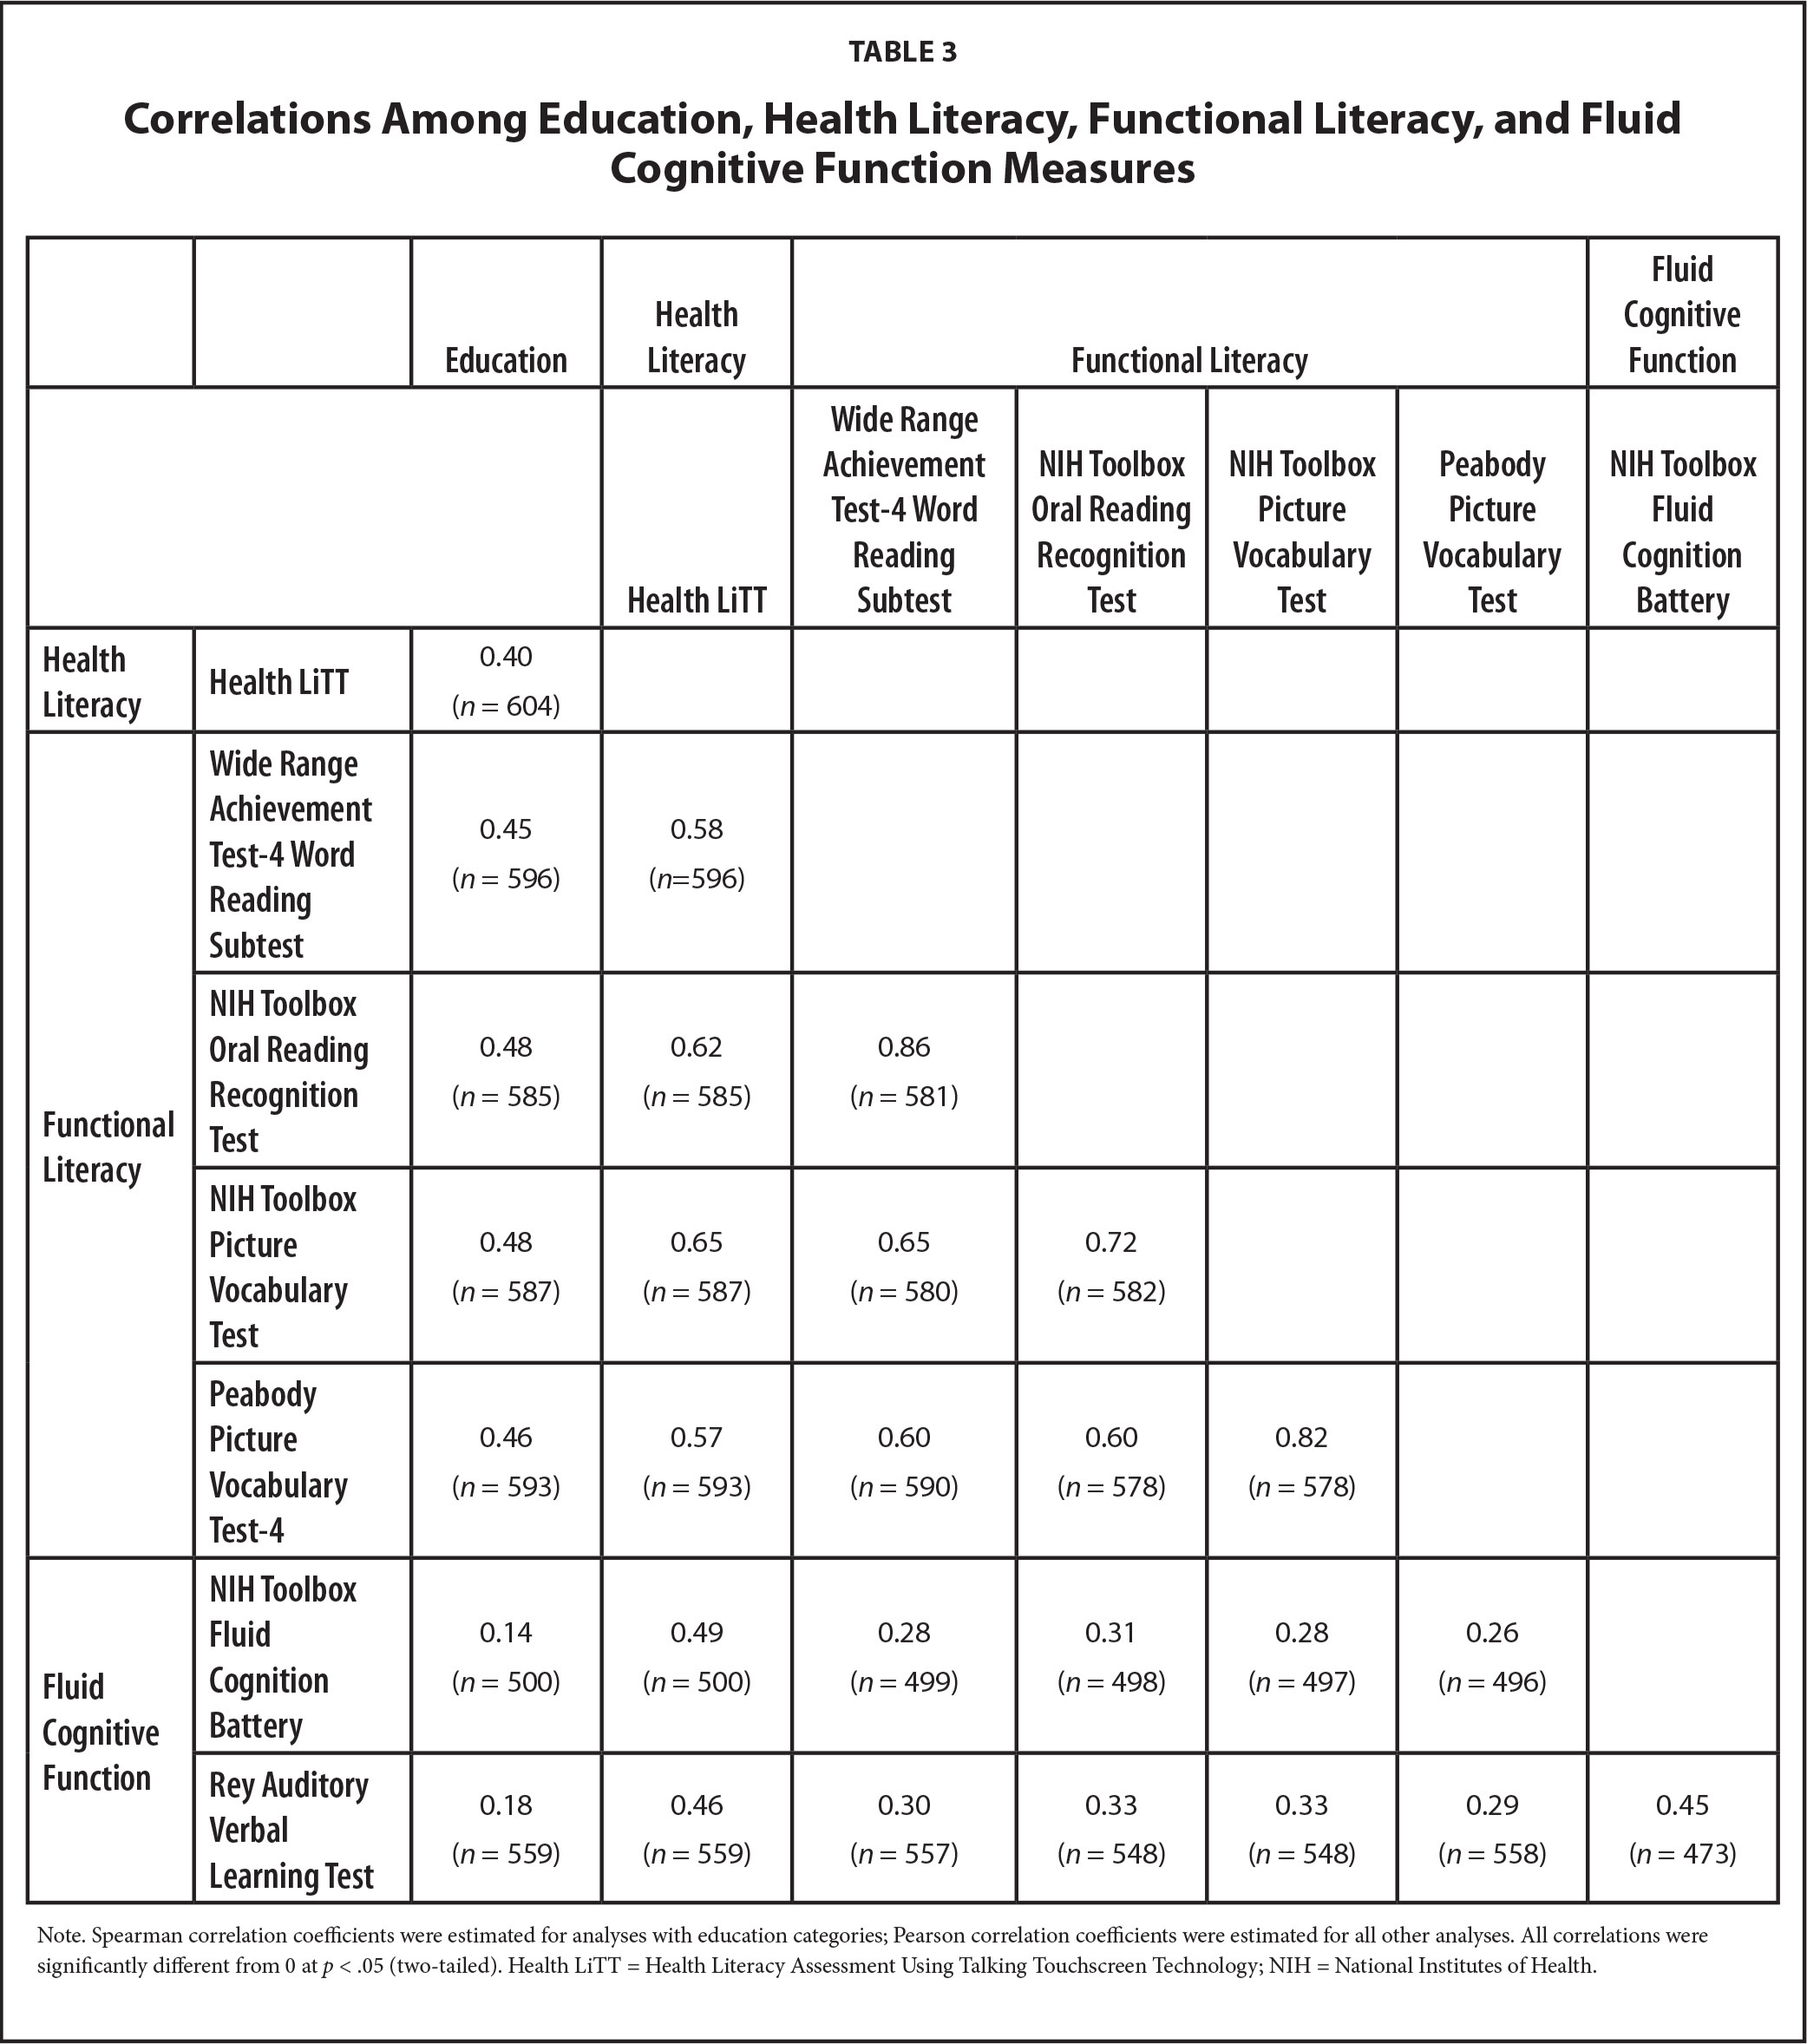 Correlations Among Education, Health Literacy, Functional Literacy, and Fluid Cognitive Function Measures